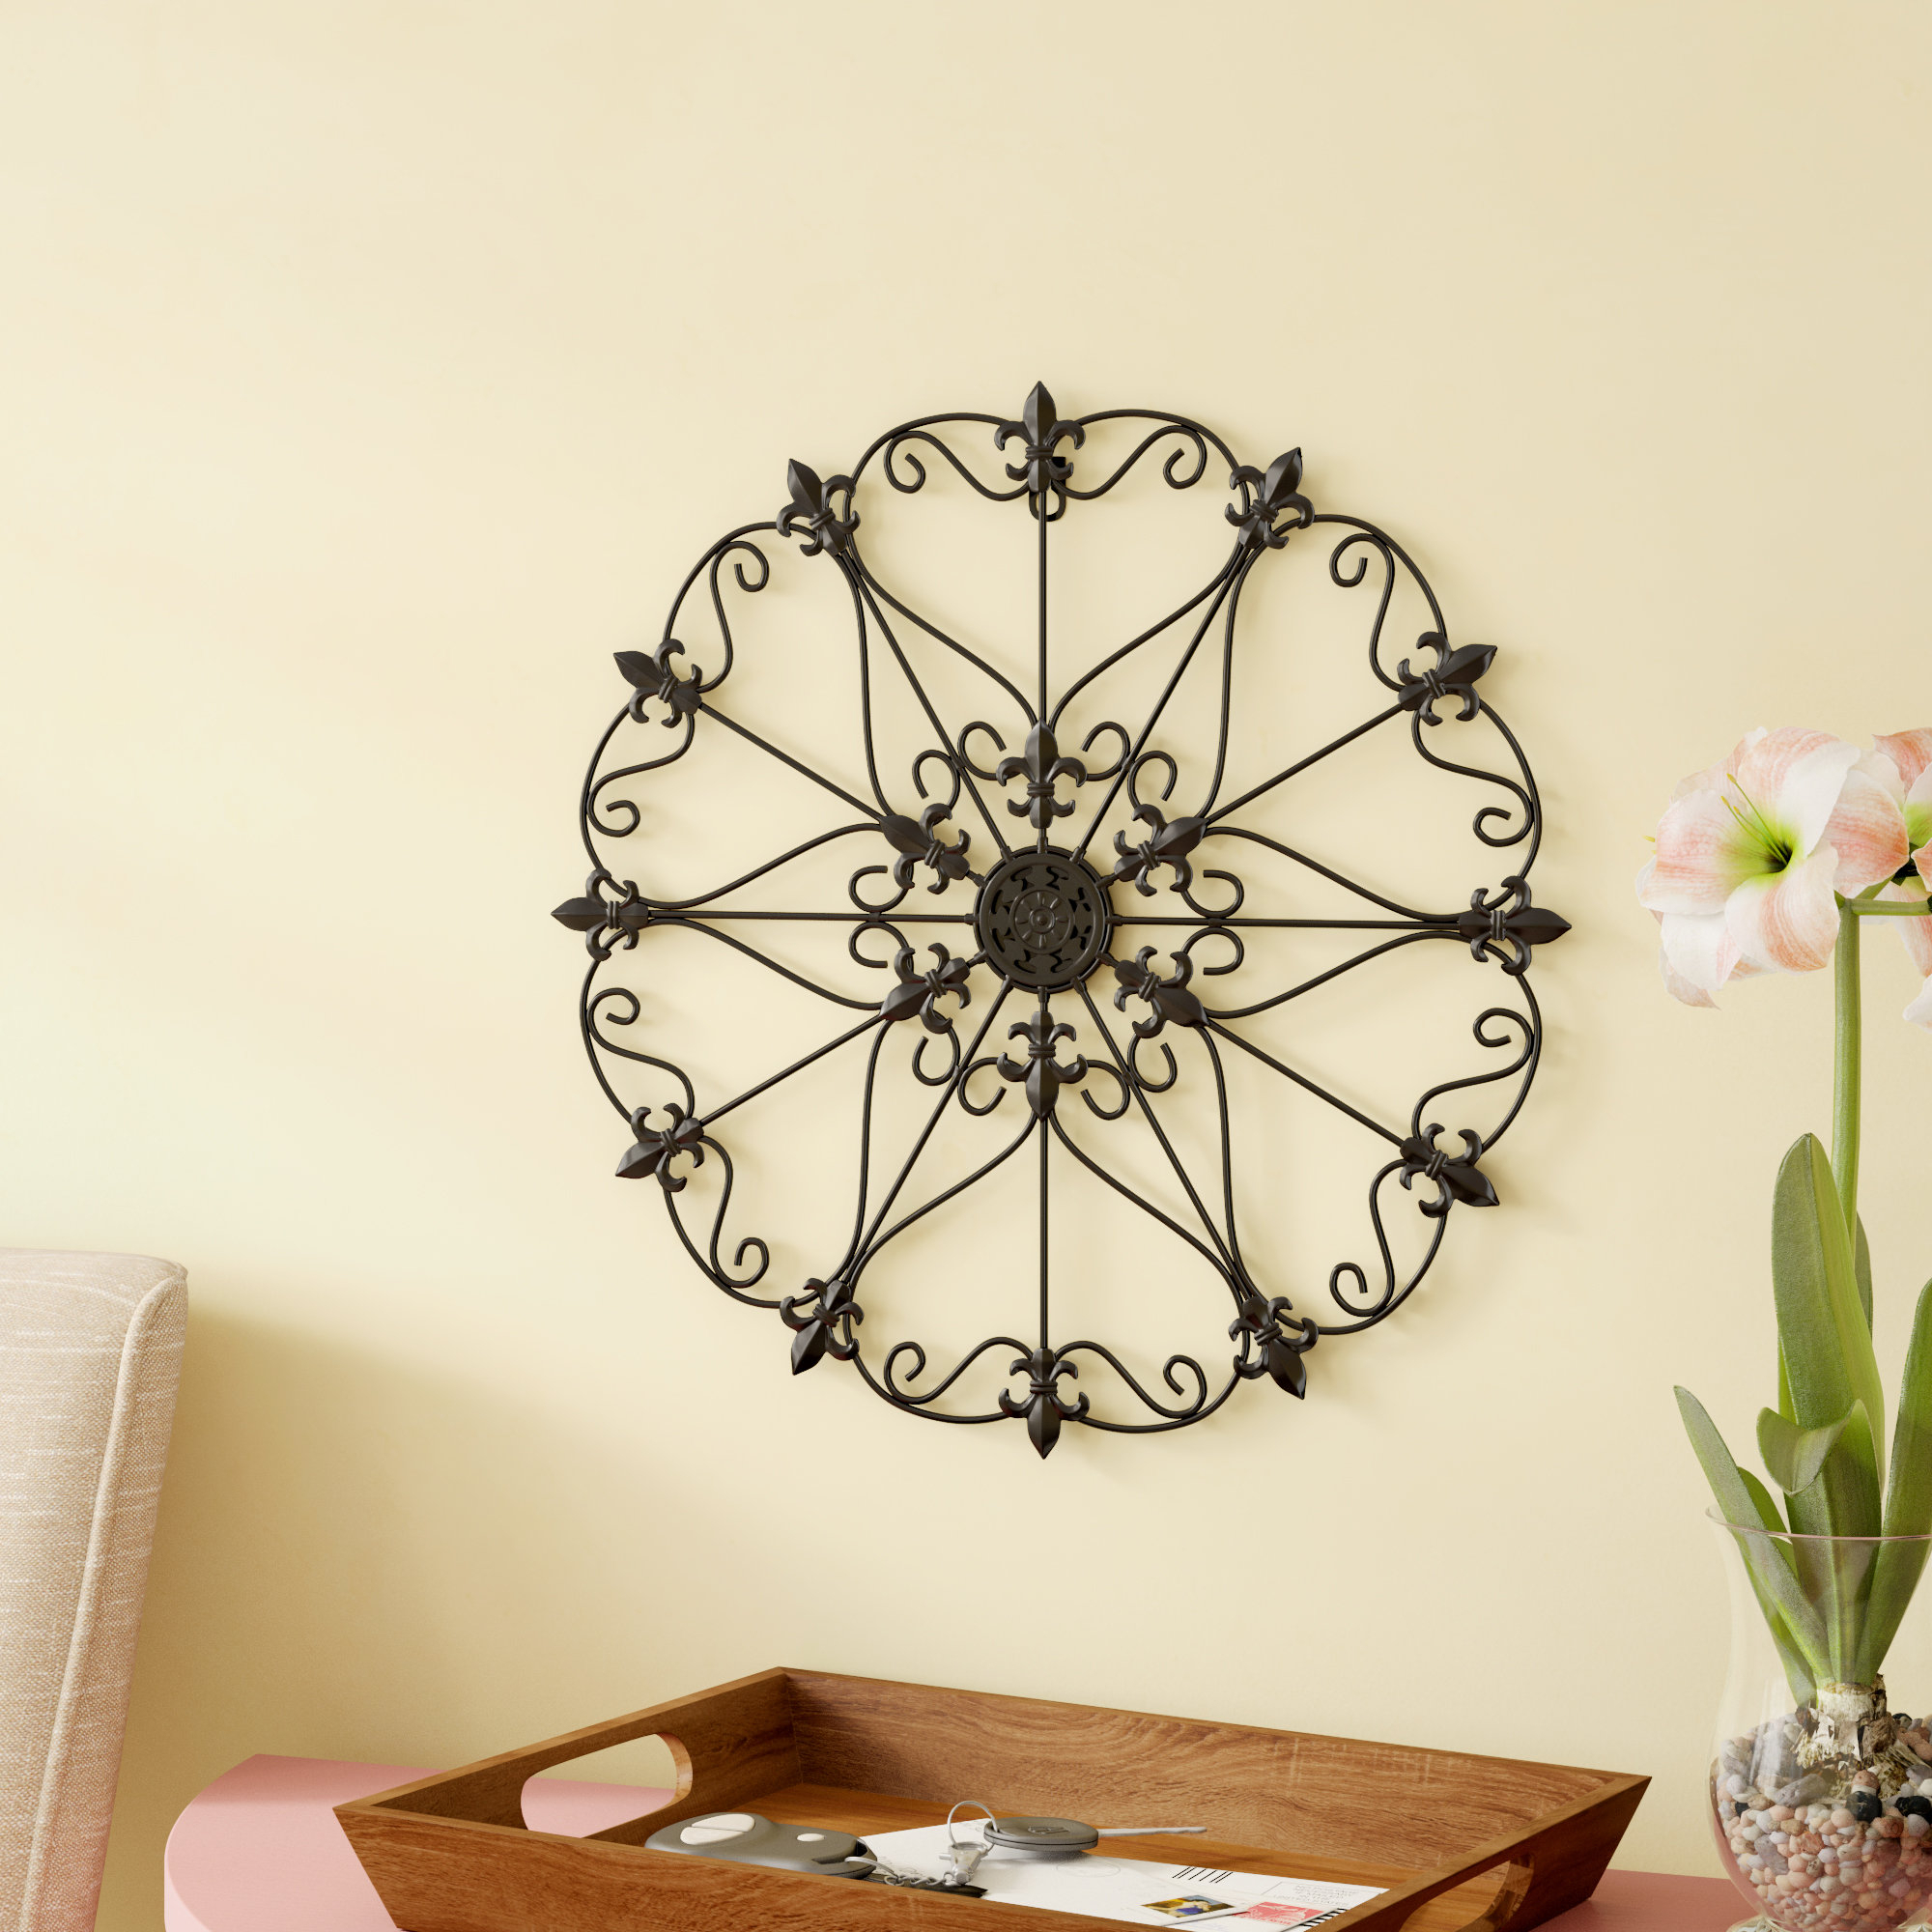 Medallion Wall Decor | Wayfair with regard to Small Medallion Wall Decor (Image 14 of 30)